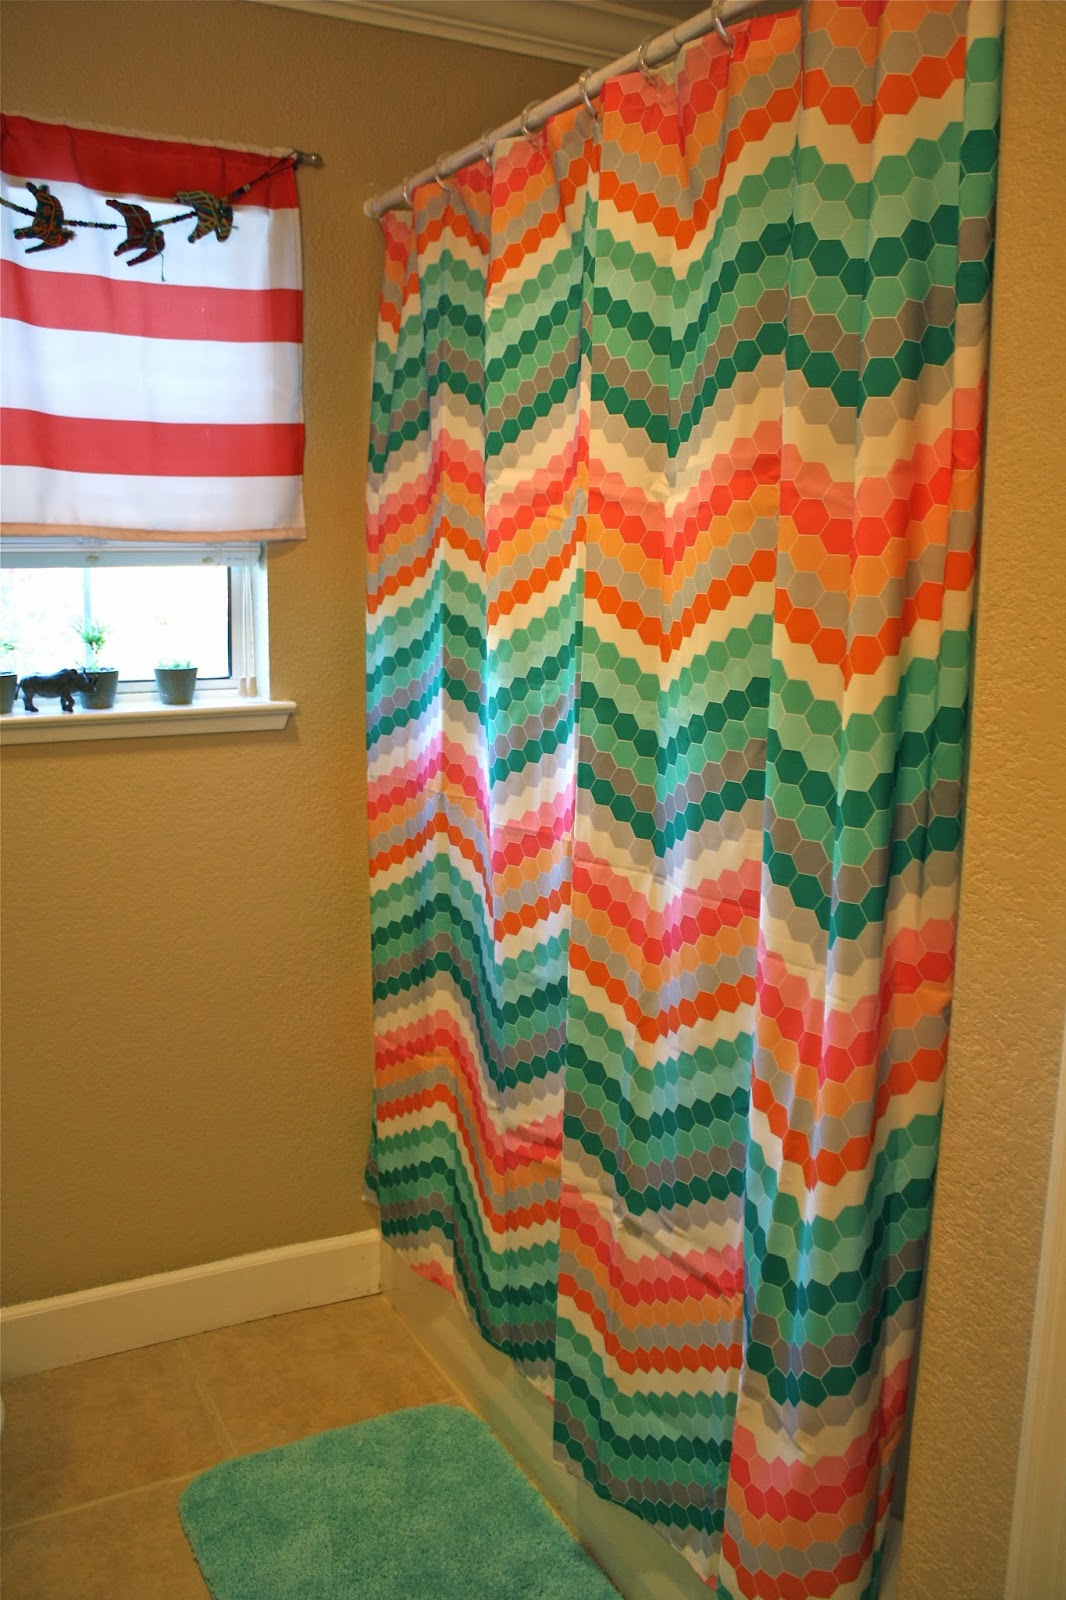 Aqua Chevron Shower Curtain - For my shower curtain and bathmat i turned to target i picked up this chevron curtain and love the punch of color it gives this otherwise average bathroom